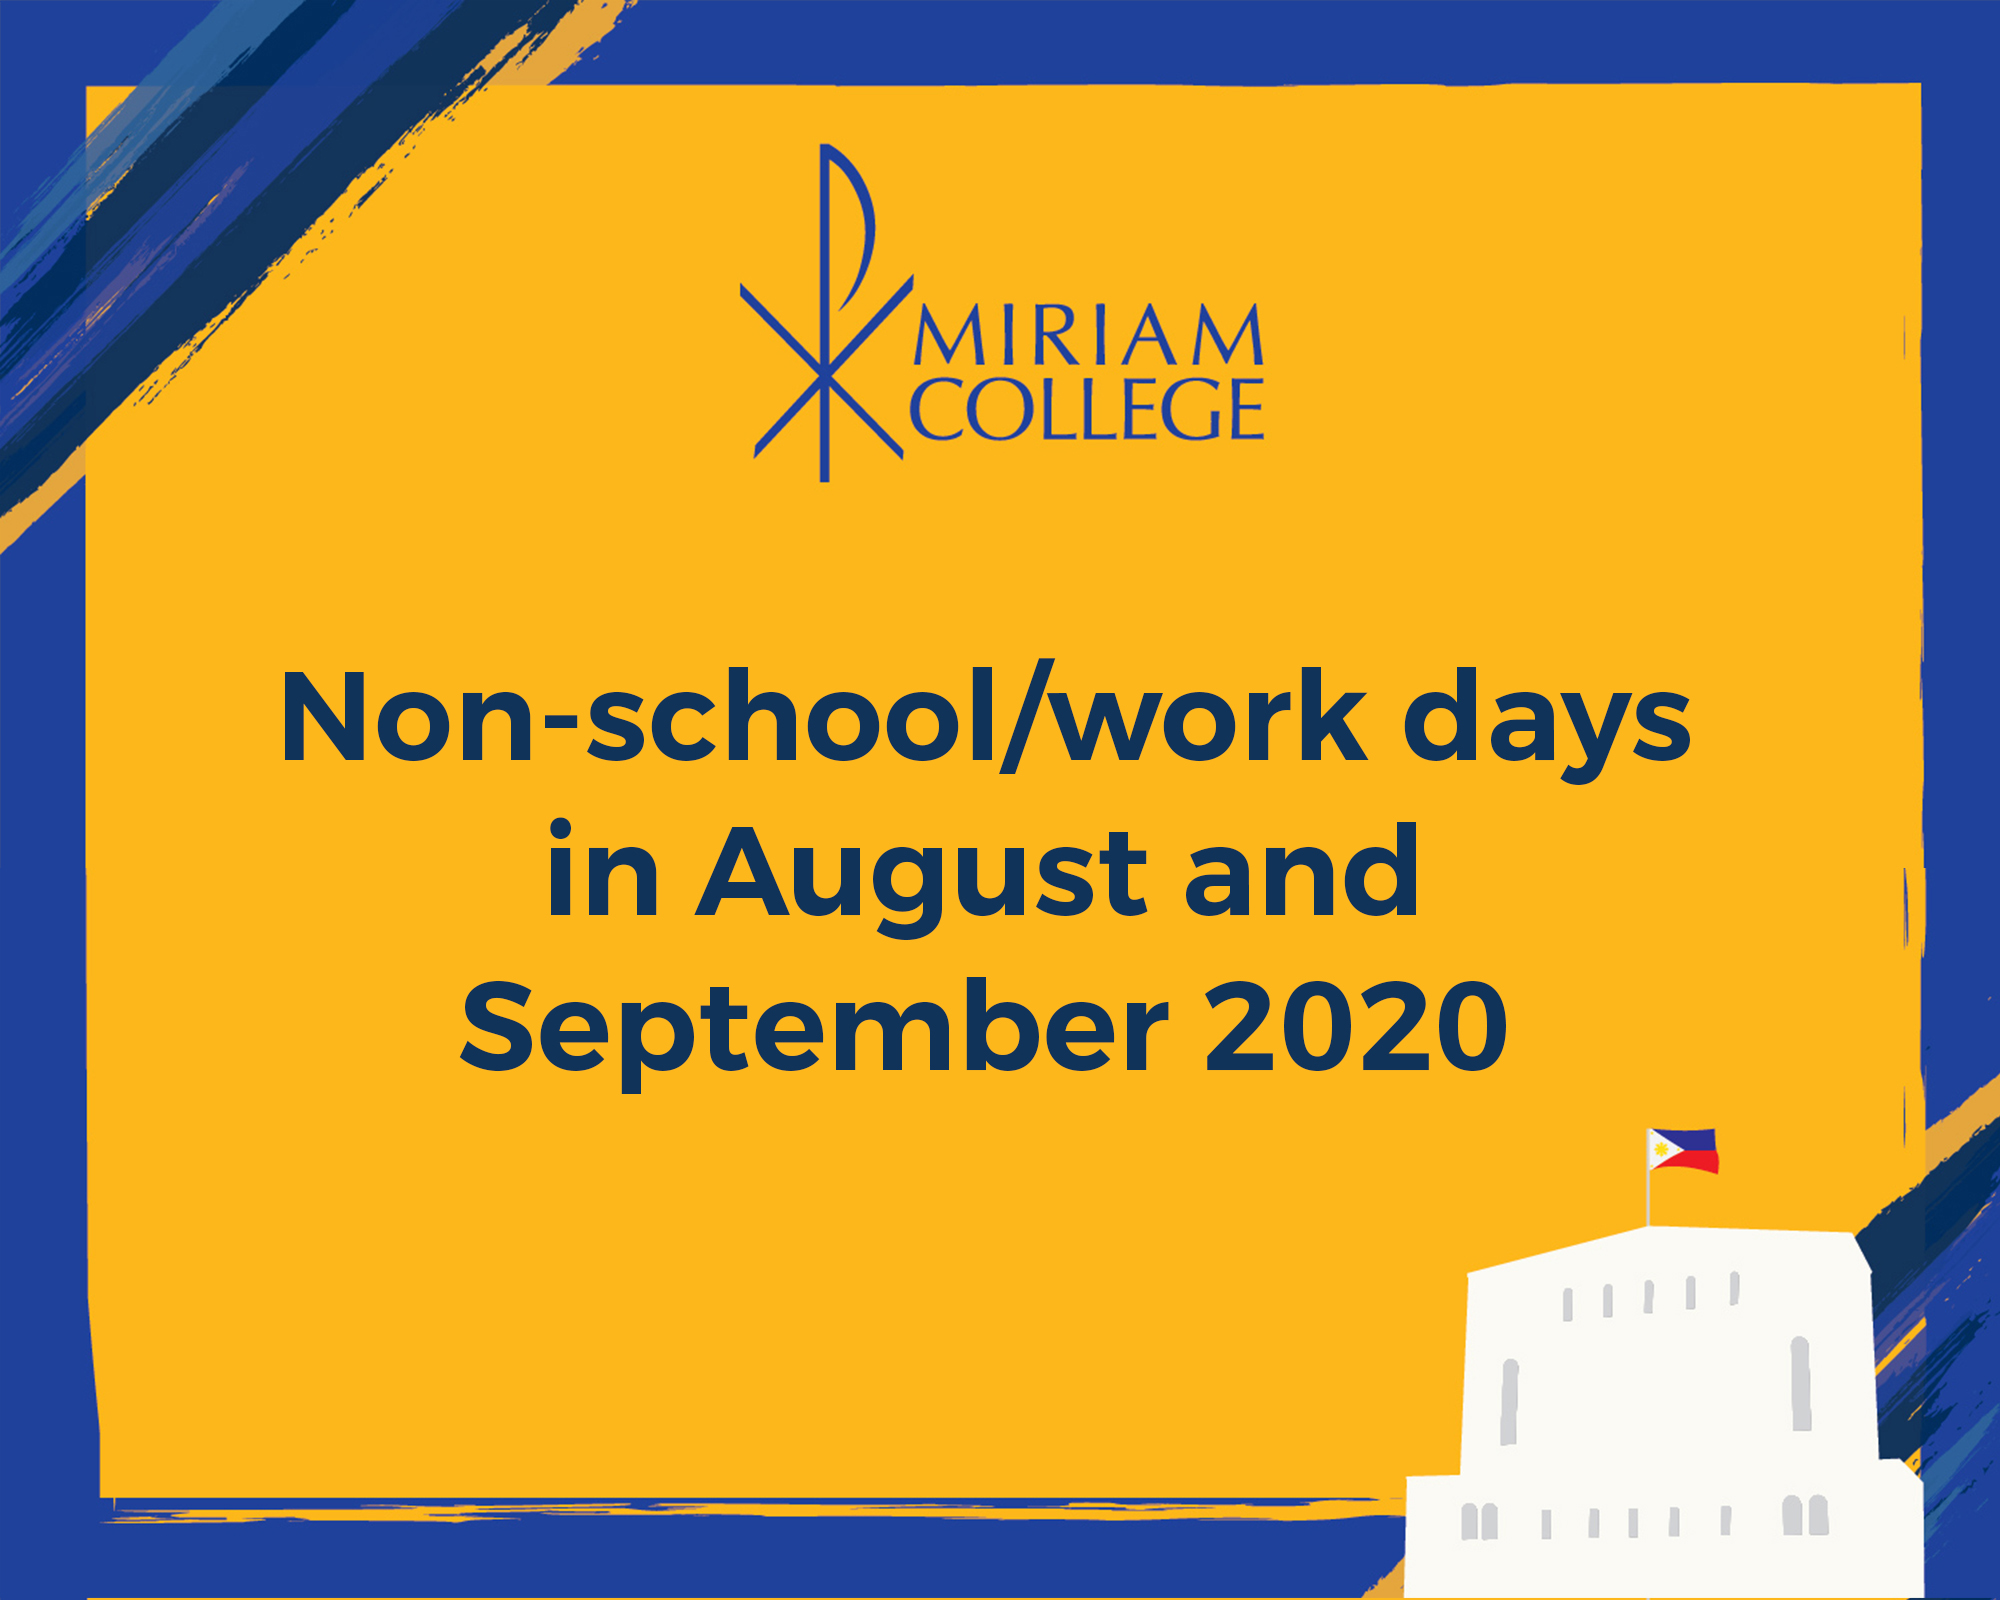 Non-school/work days in August and September 2020